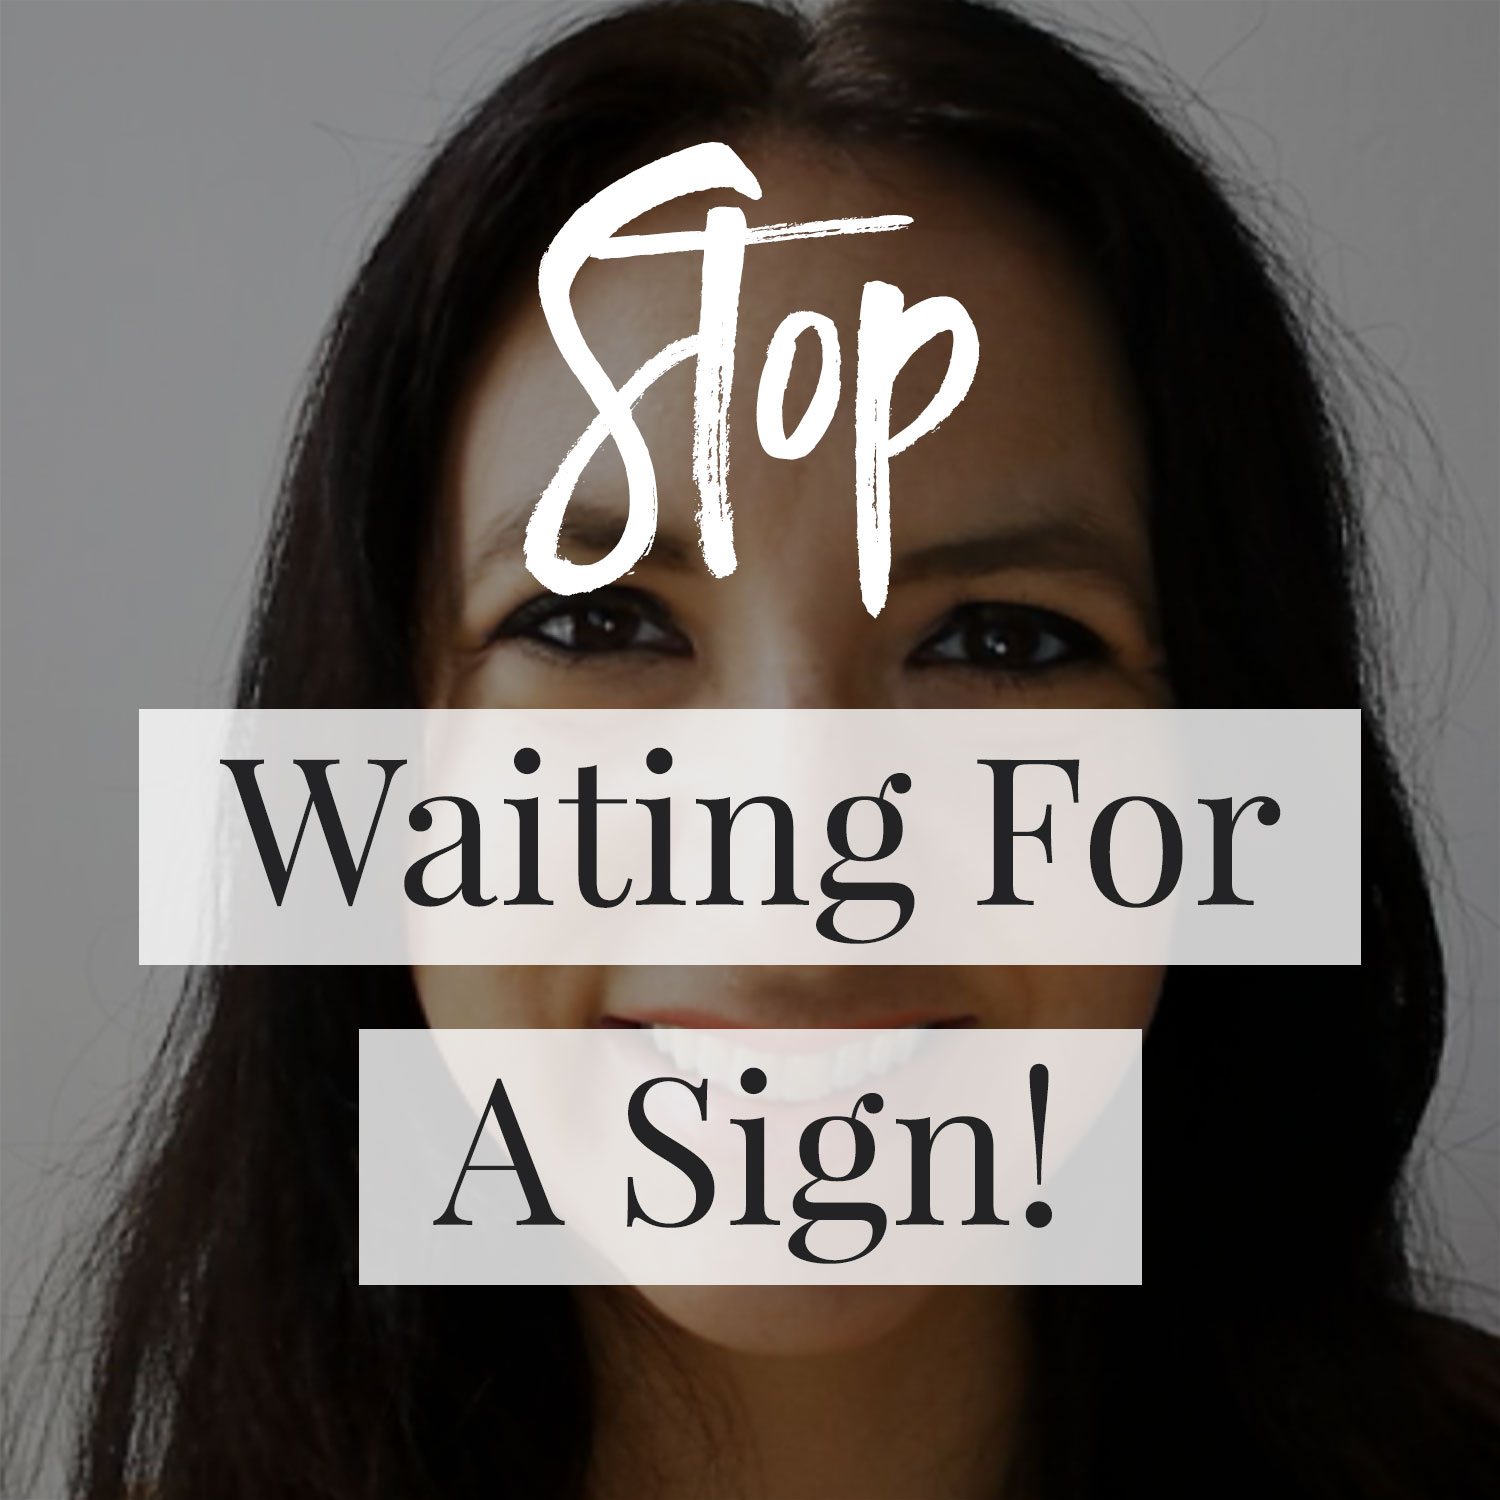 VIDEO: Stop Looking For A Sign!